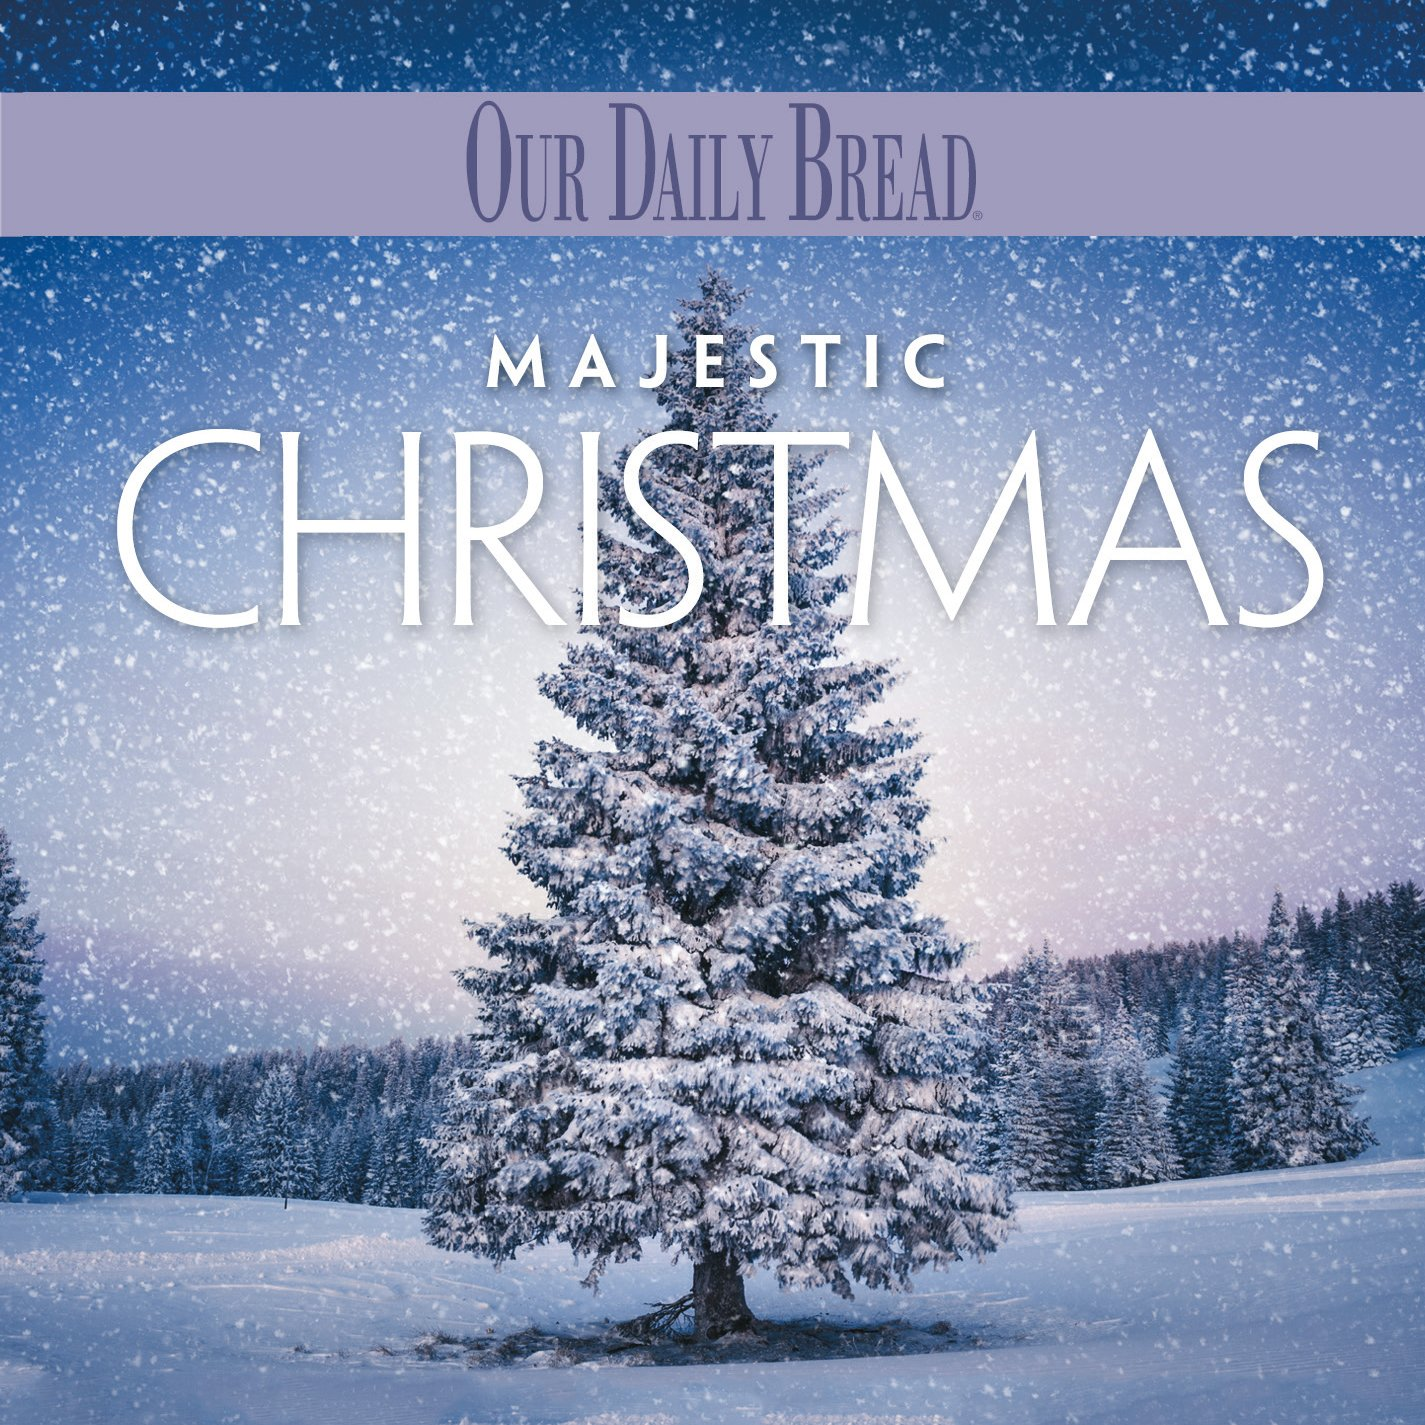 Majestic Christmas.Our Daily Bread Majestic Christmas Amazon Com Music